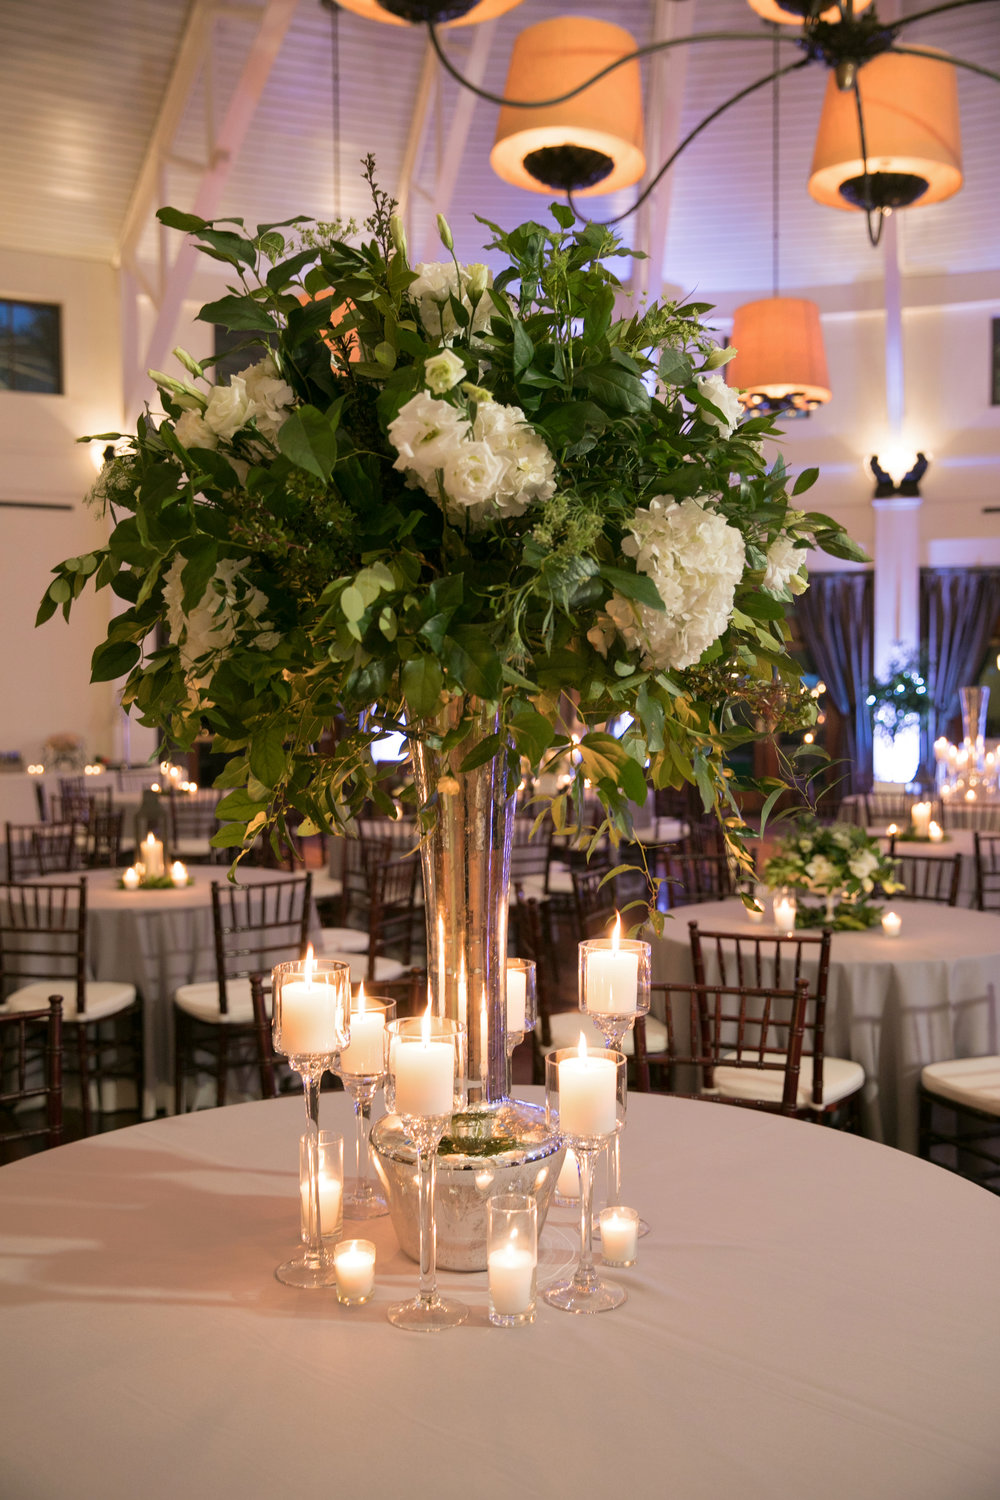 Wedding Planners Audubon TeaRoom 23.jpg